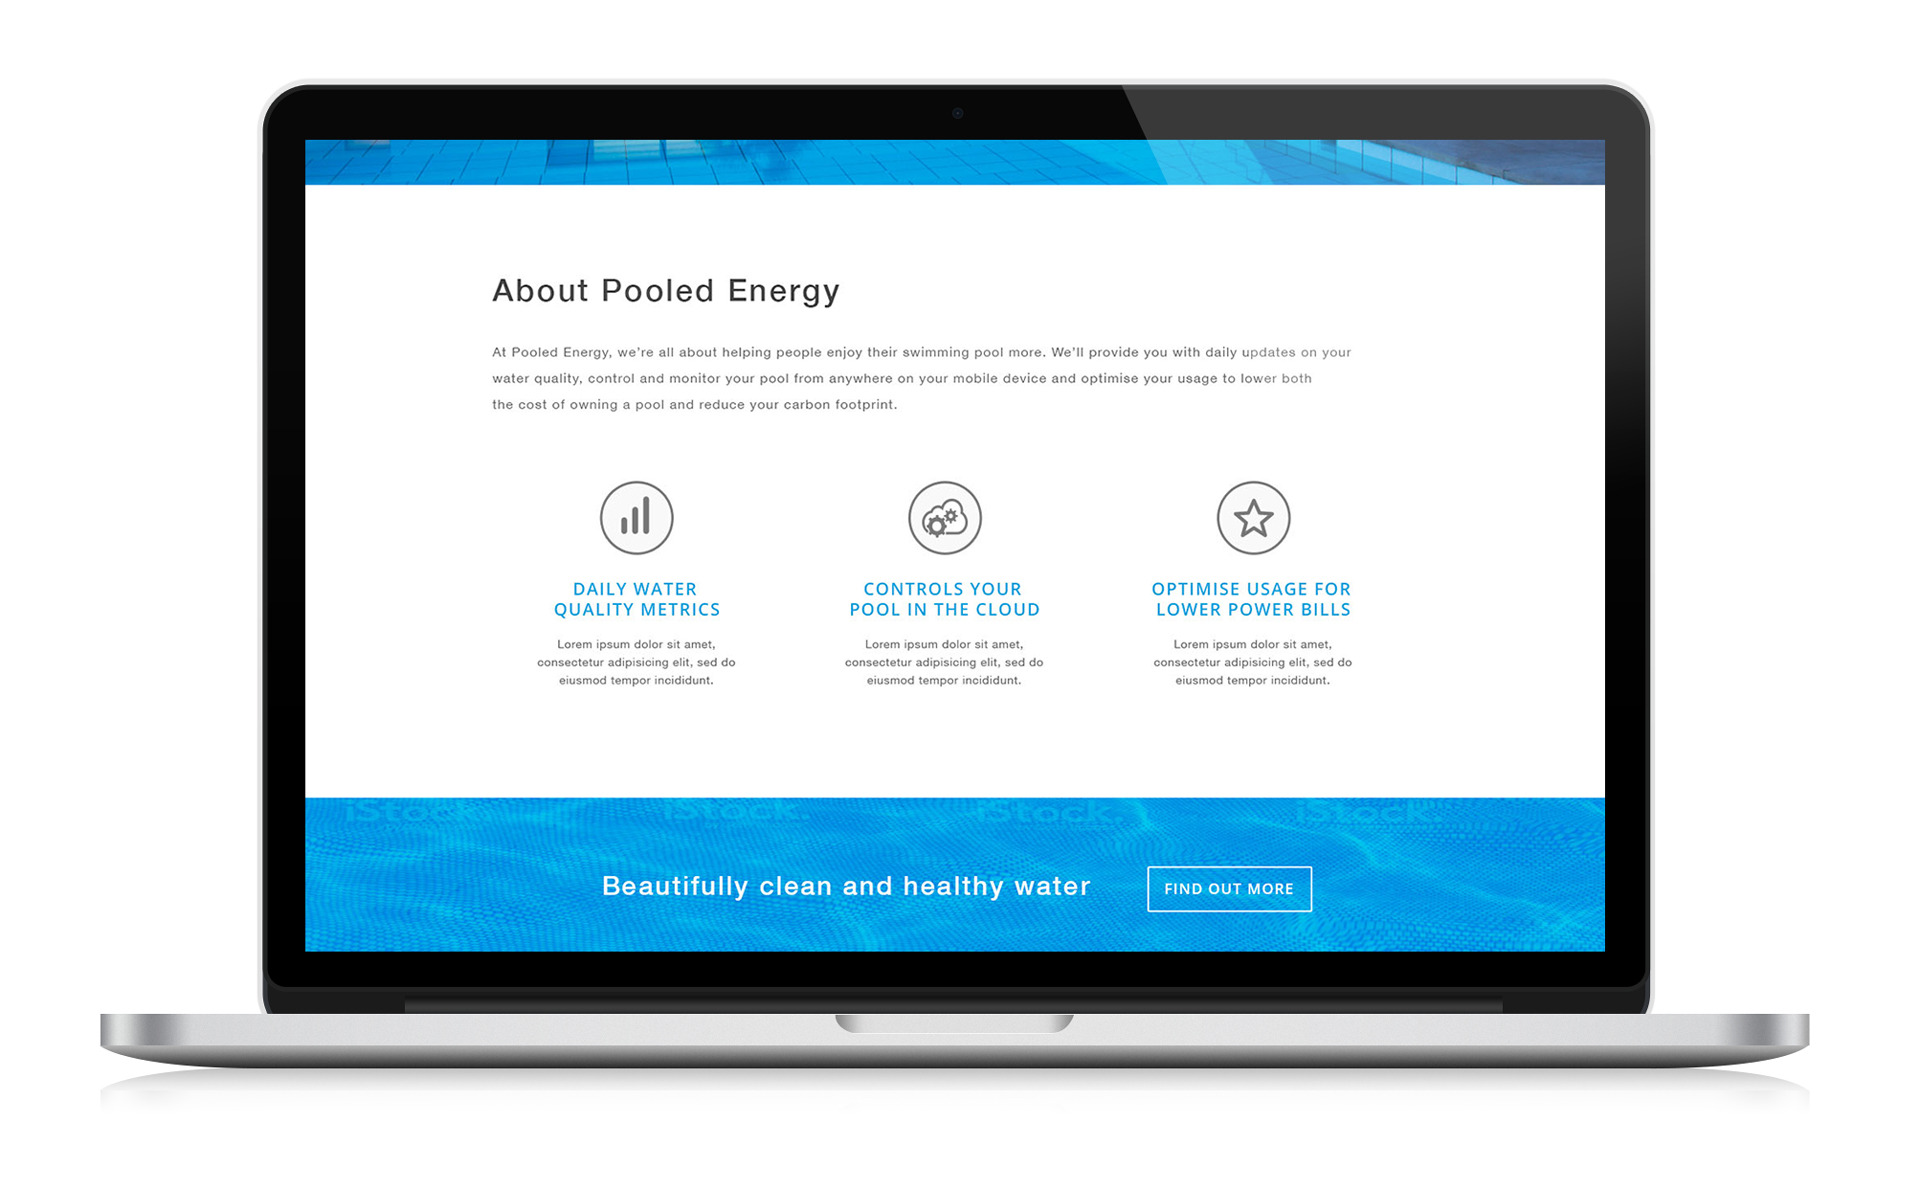 Pooled Energy website